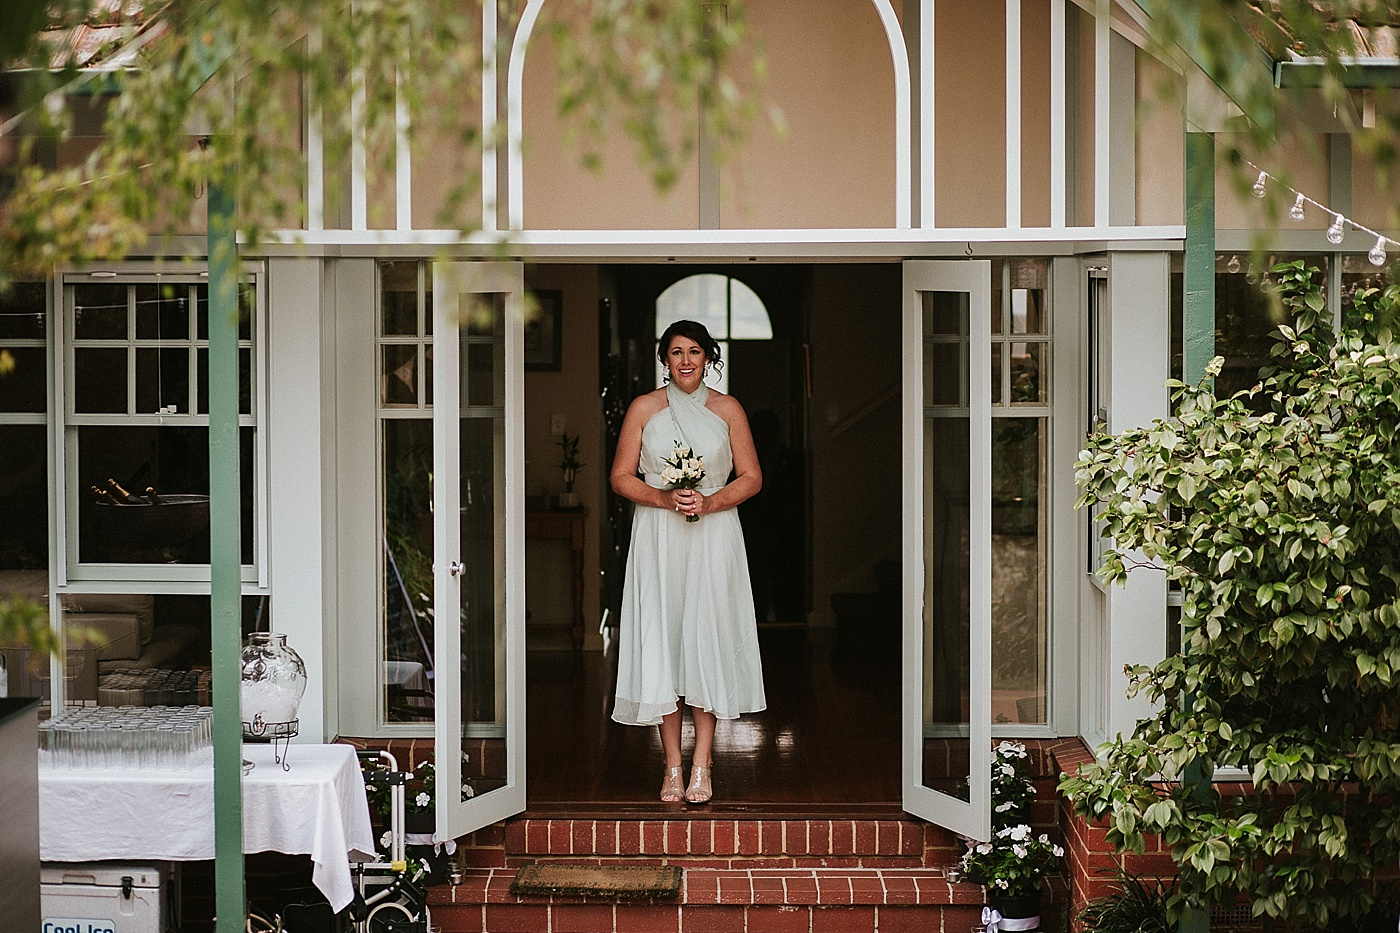 Brooke&David_Melbourne-Quirky-Relaxed-Fun-Casual-Backyard-Wedding_Melbourne-Wedding-Photography-37